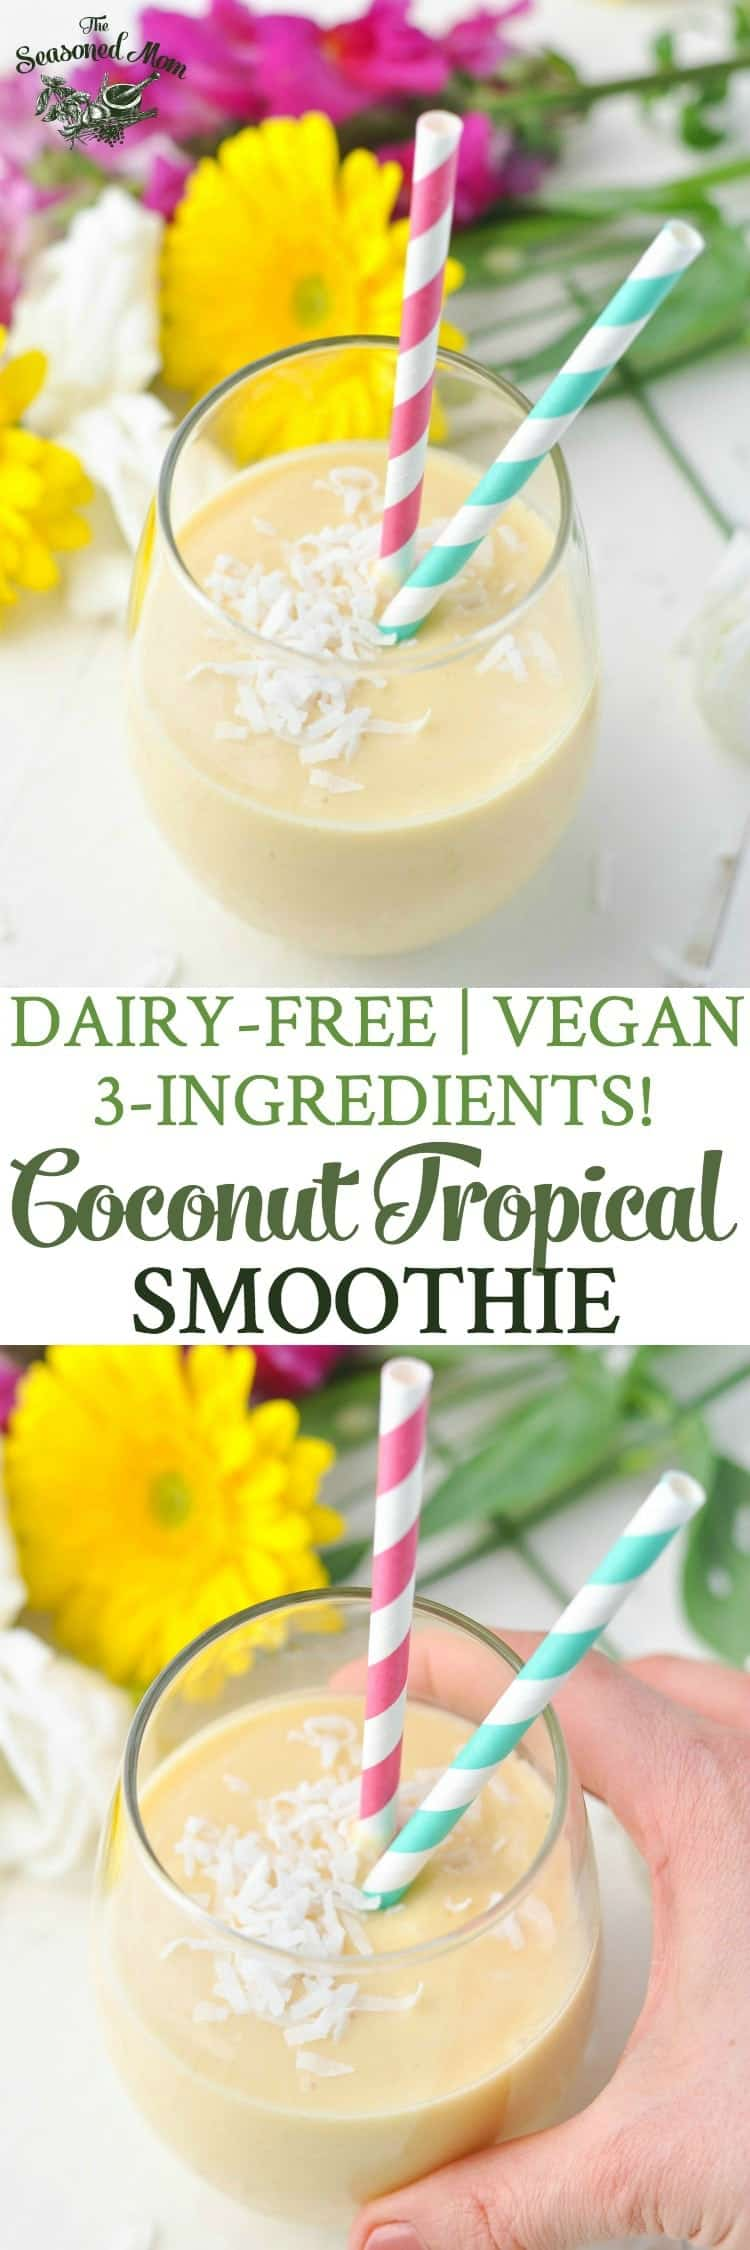 3-Ingredient Coconut Tropical Smoothie! Dairy-Free | Vegan | Gluten Free | Healthy Breakfast Recipes | Breakfast Ideas | Healthy Snacks | Vegan Breakfast | Vegan Recipes